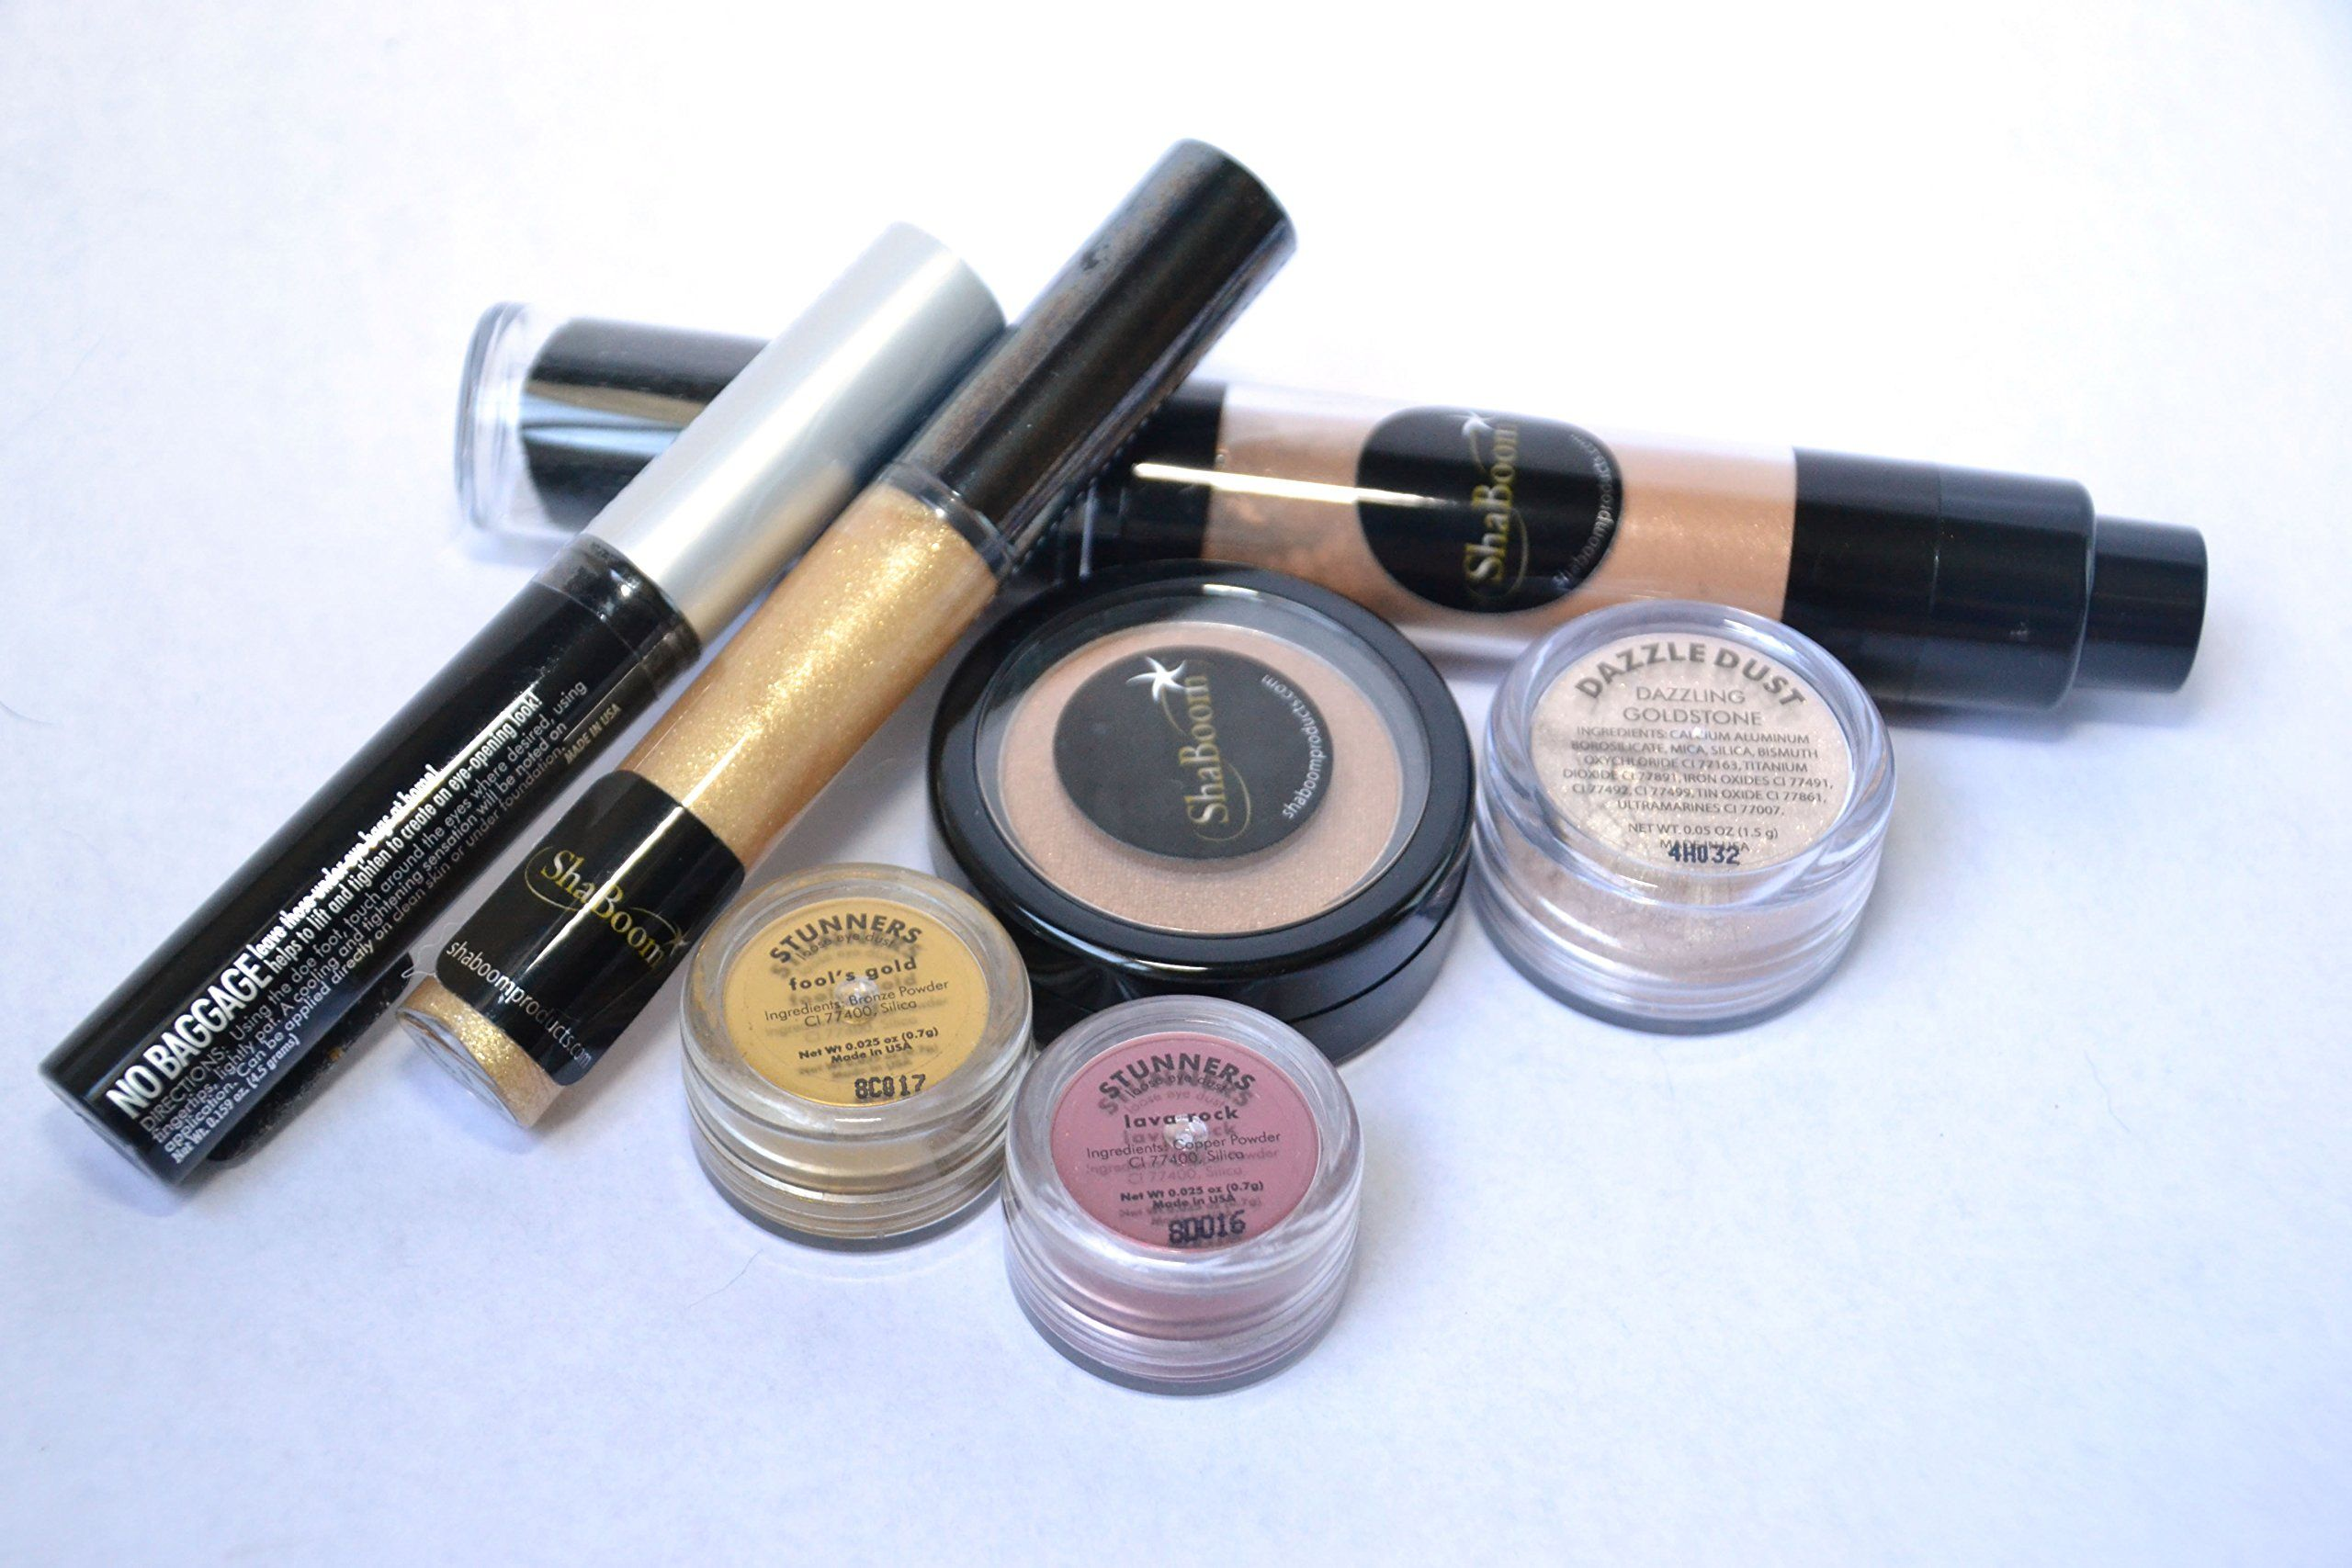 Red Carpet Goddess Kit Get a Heavenly Glow All Day with